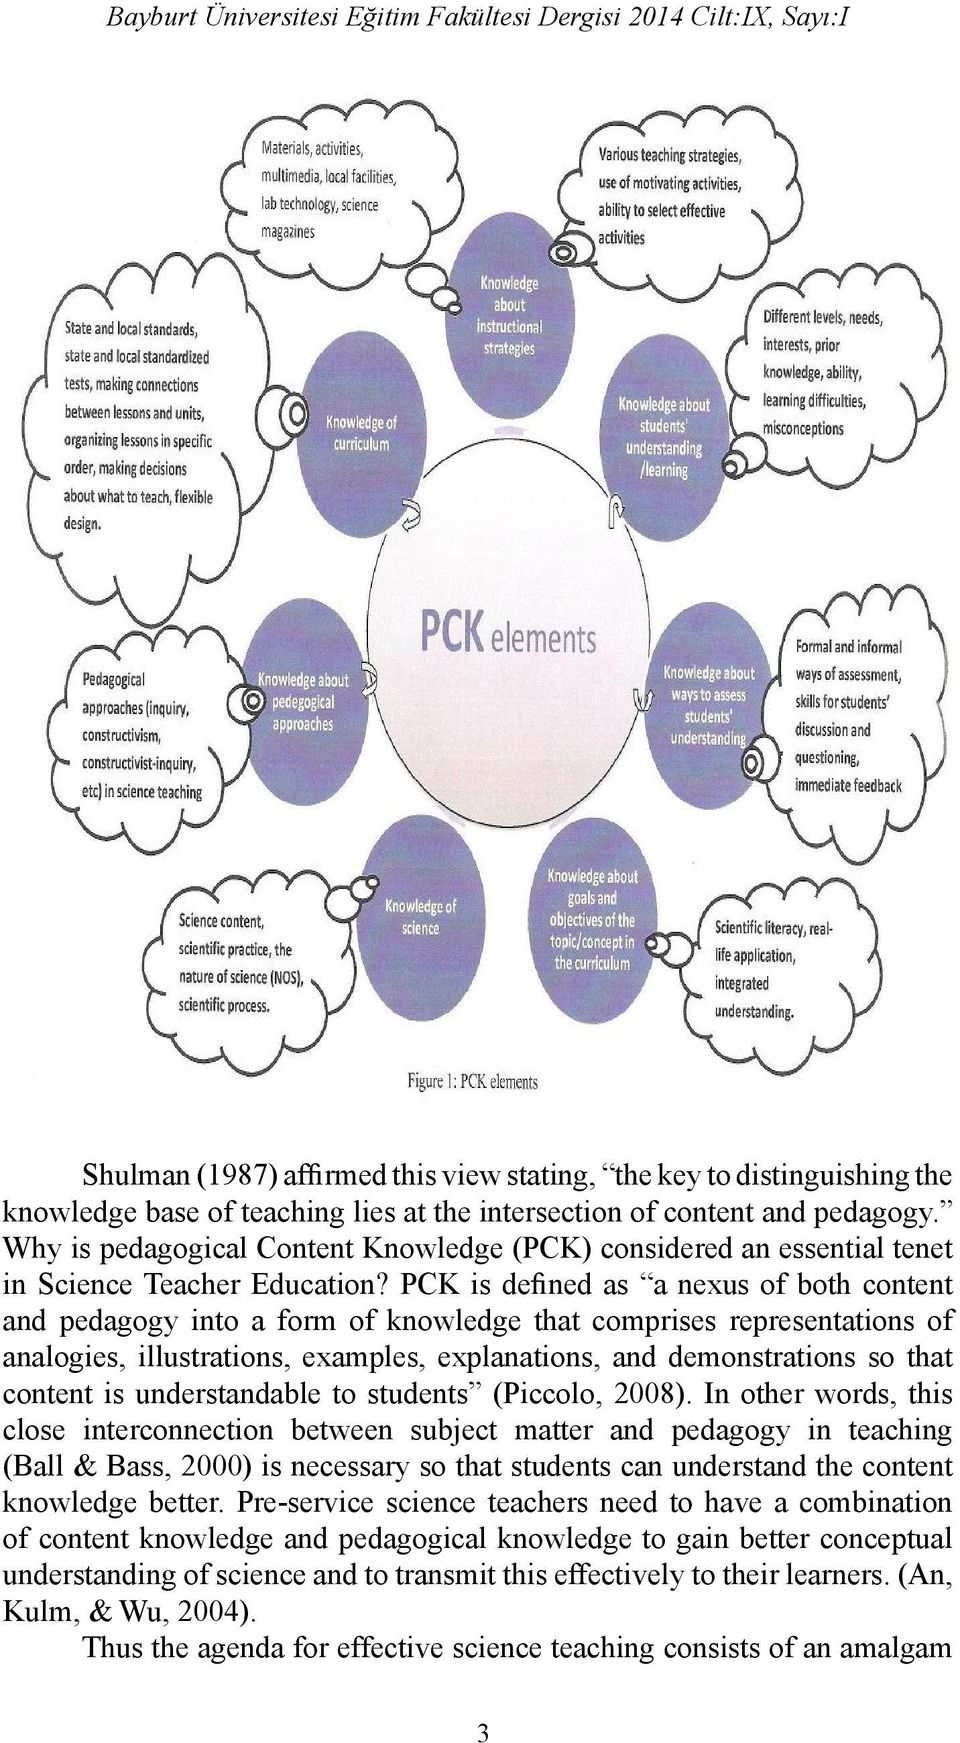 PCK is defined as a nexus of both content and pedagogy into a form of knowledge that comprises representations of analogies, illustrations, examples, explanations, and demonstrations so that content